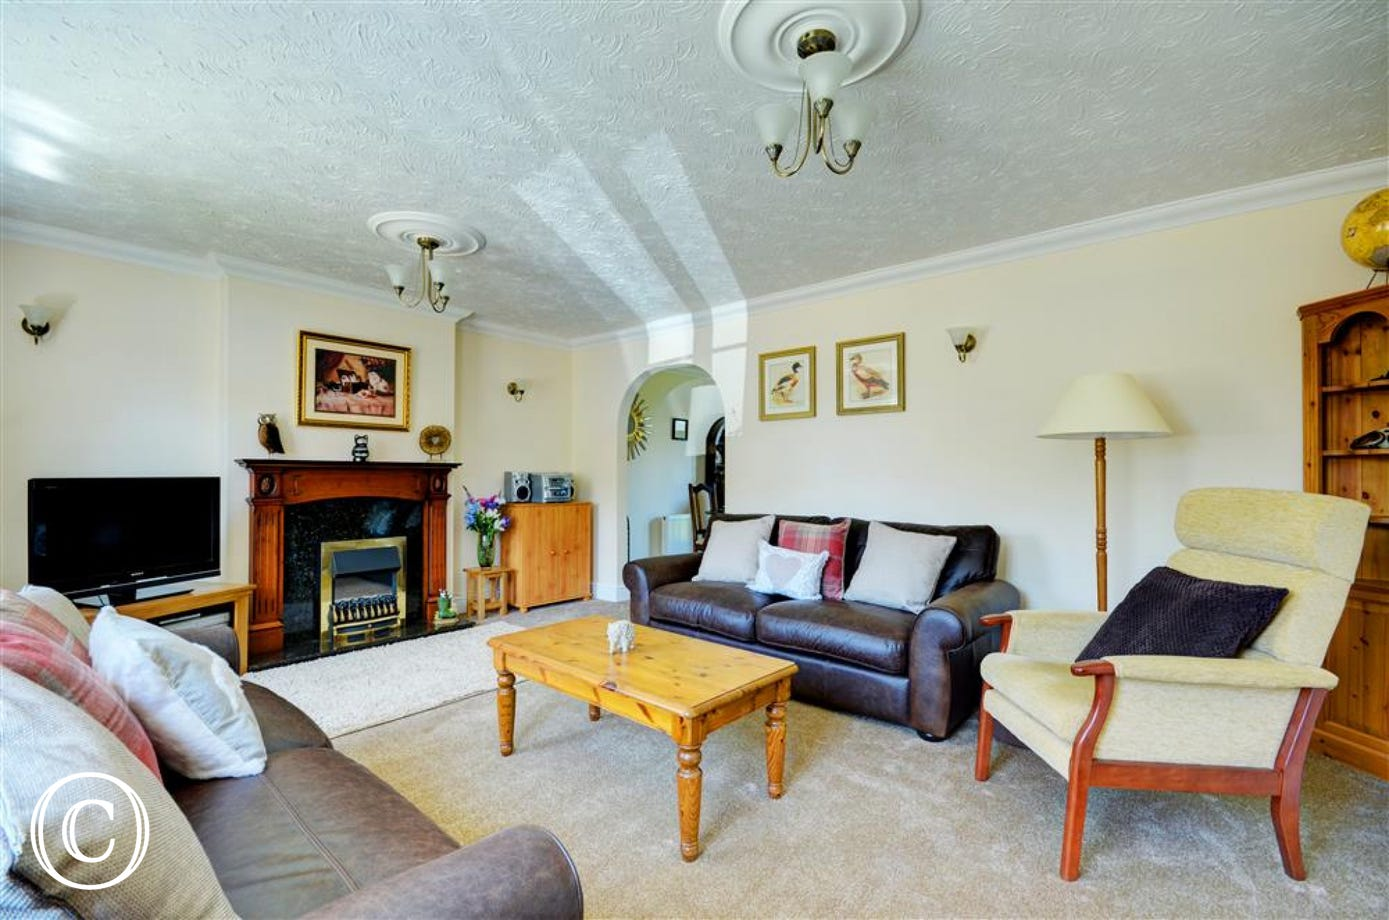 The sitting room is large enough for all guests to relax after a long day of sight seeing